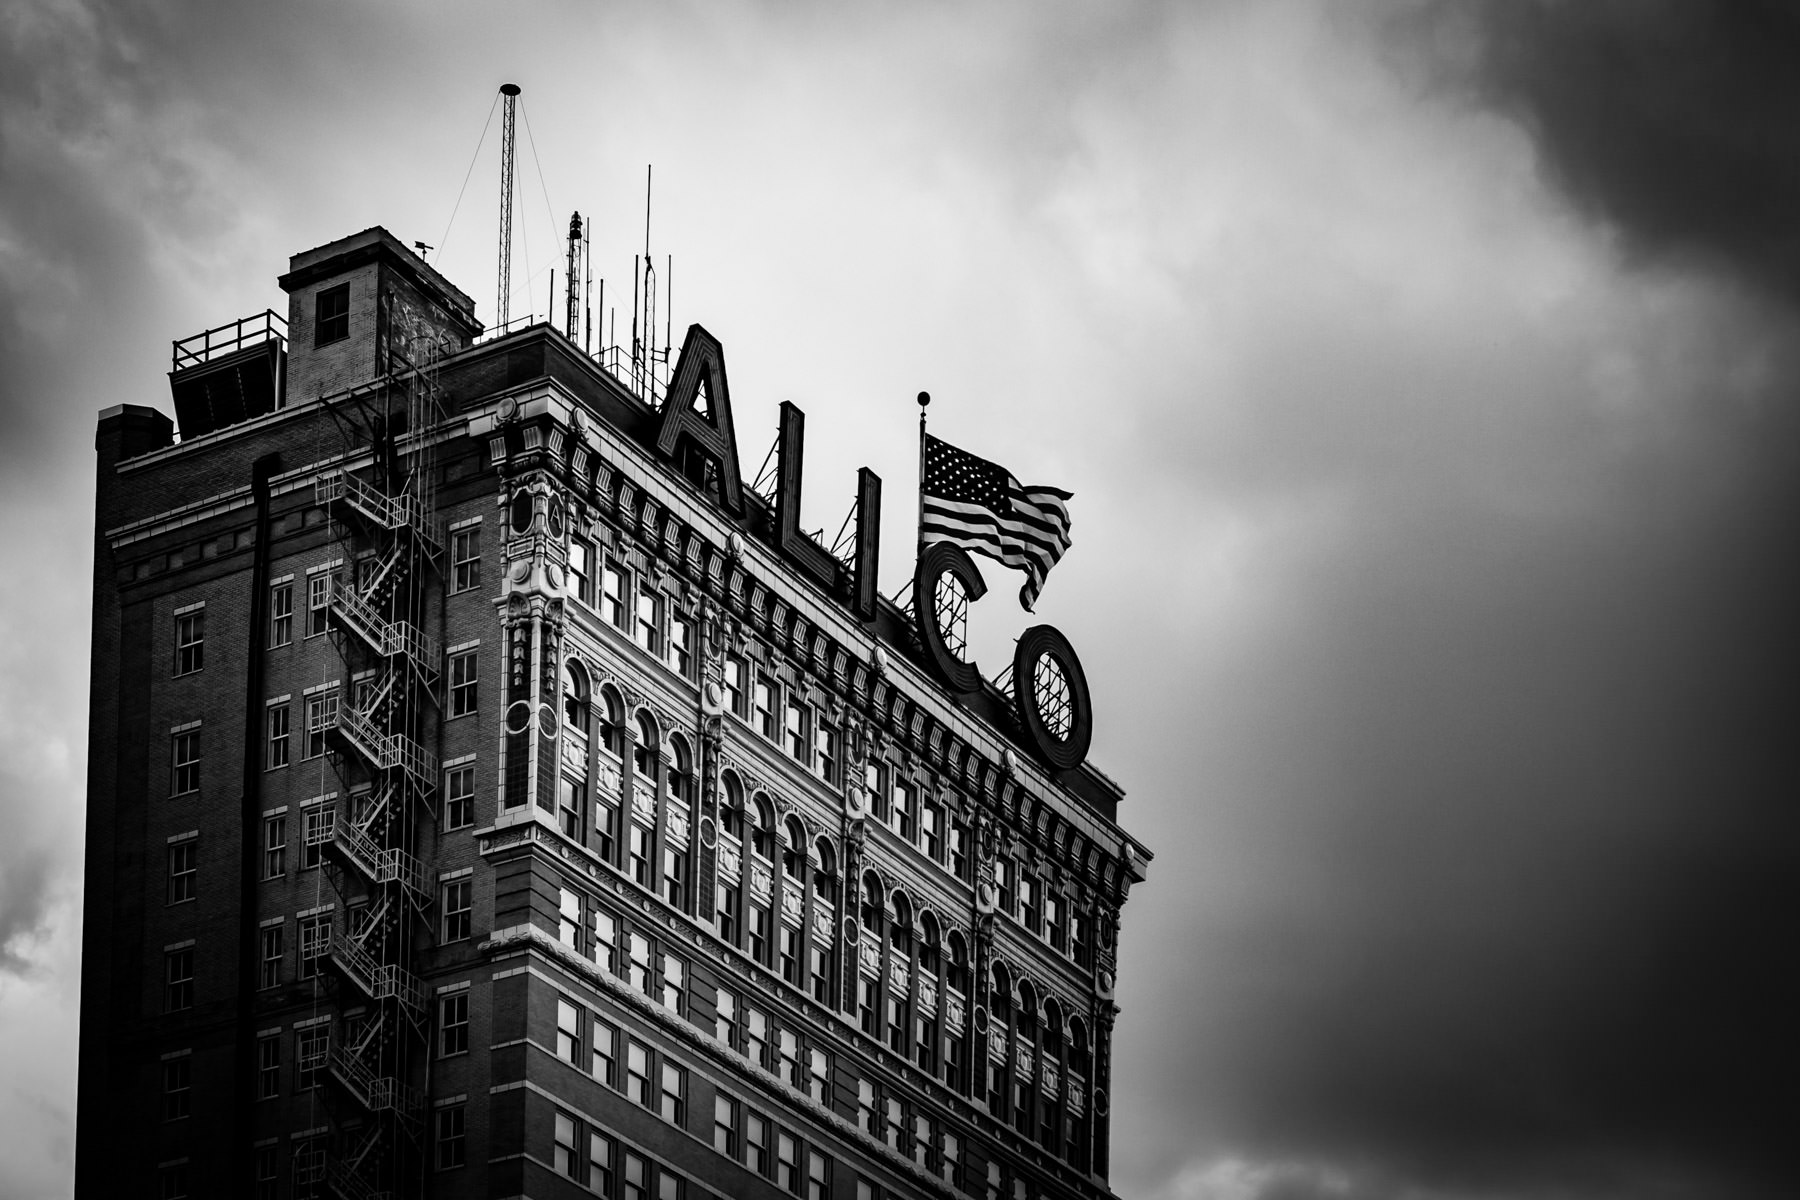 The ALICO building in Downtown Waco, Texas.